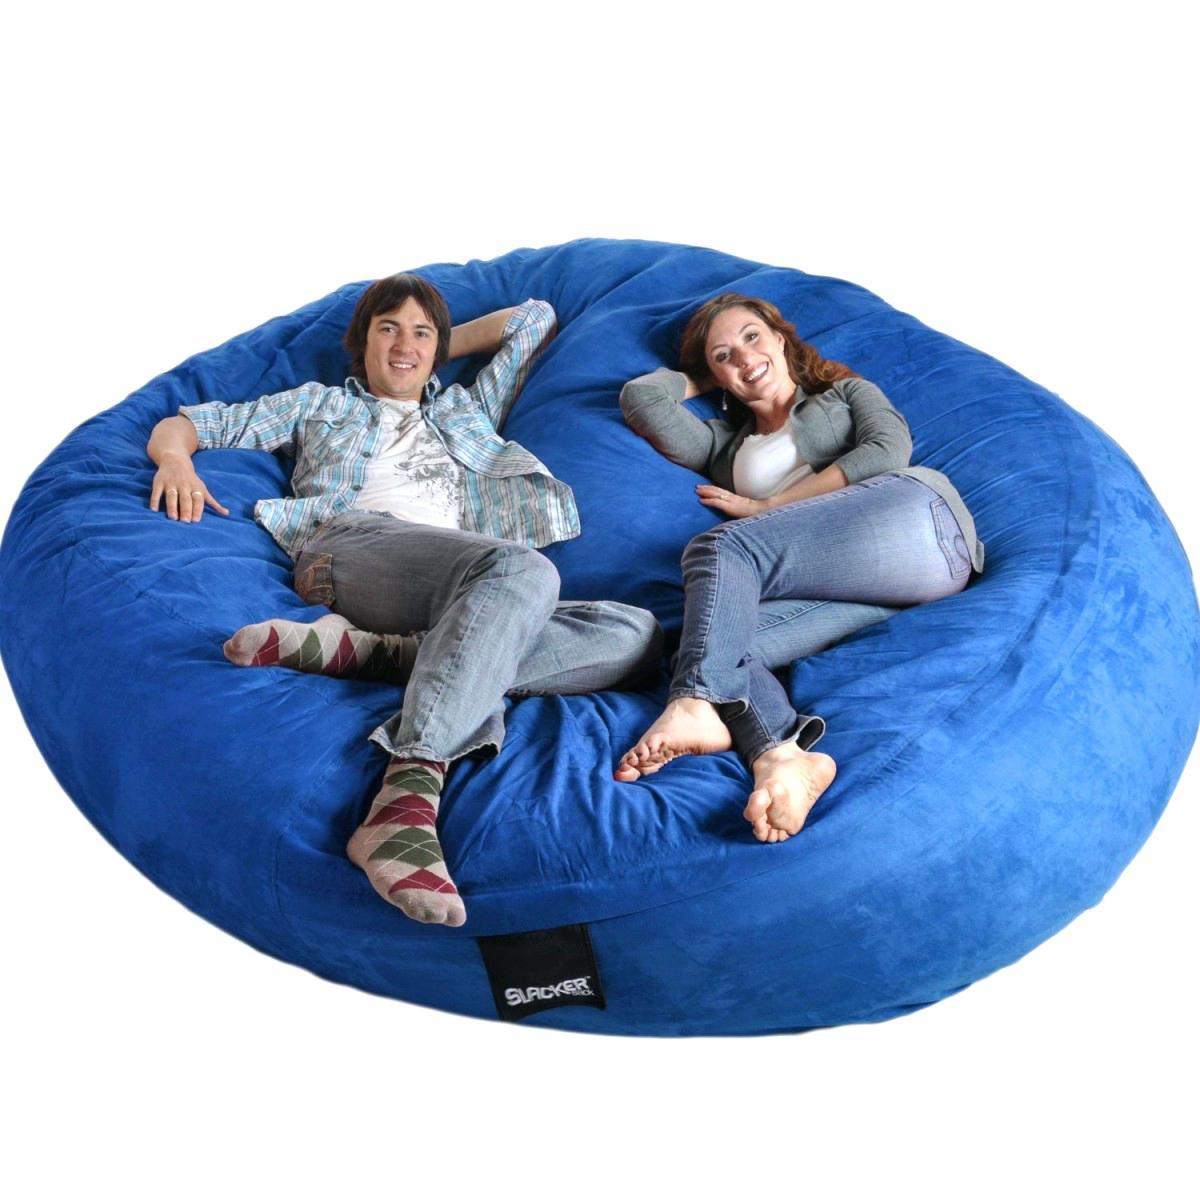 Giant Bean Bag Bed | Design Your Life Throughout Bean Bag Sofas And Chairs (Image 10 of 20)